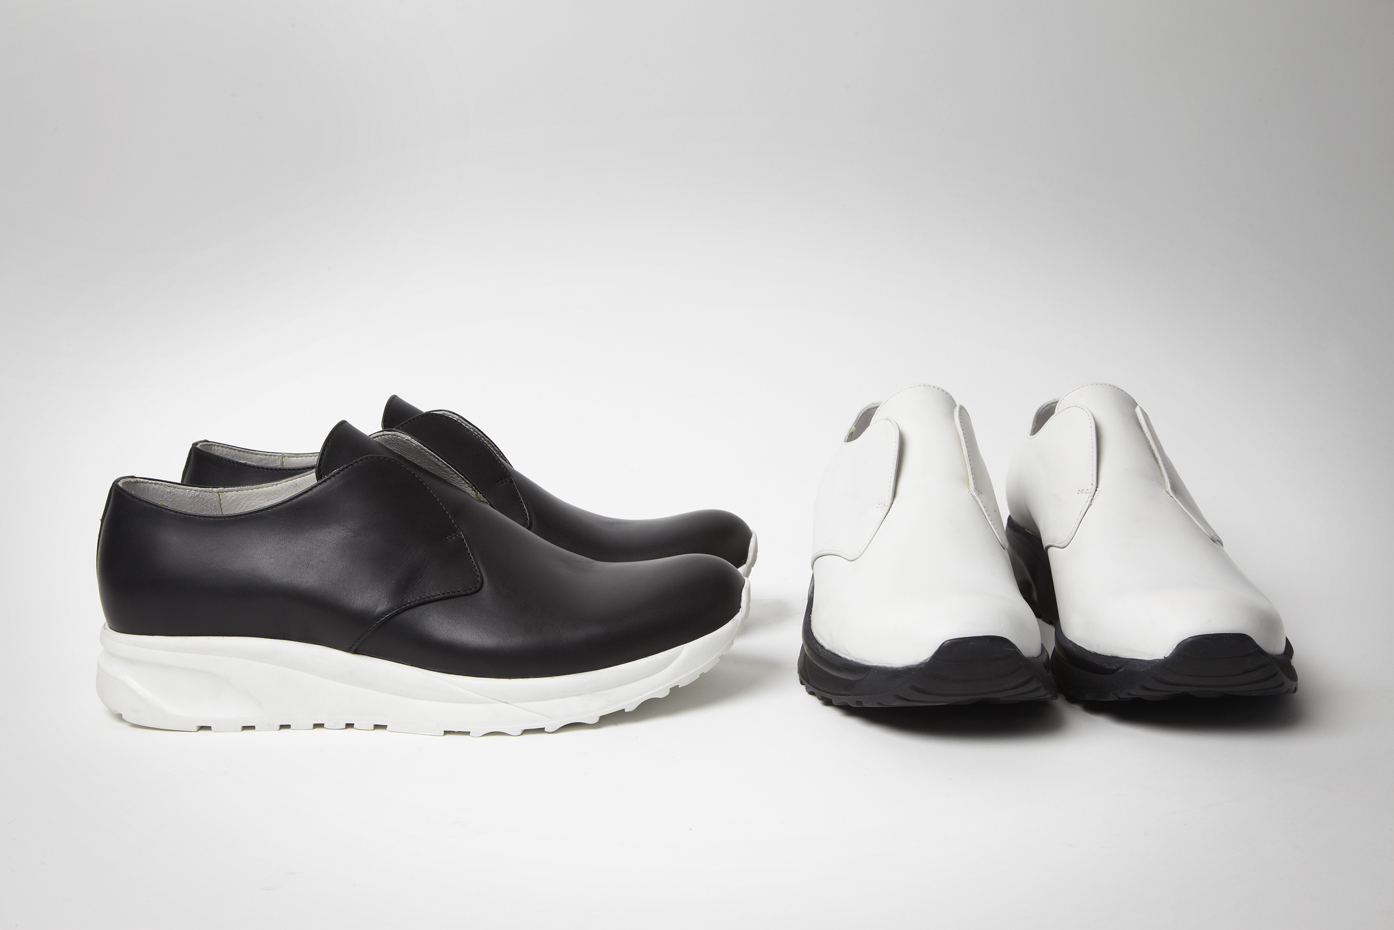 Agi Sam x Oliver Sweeney Footwear pictures